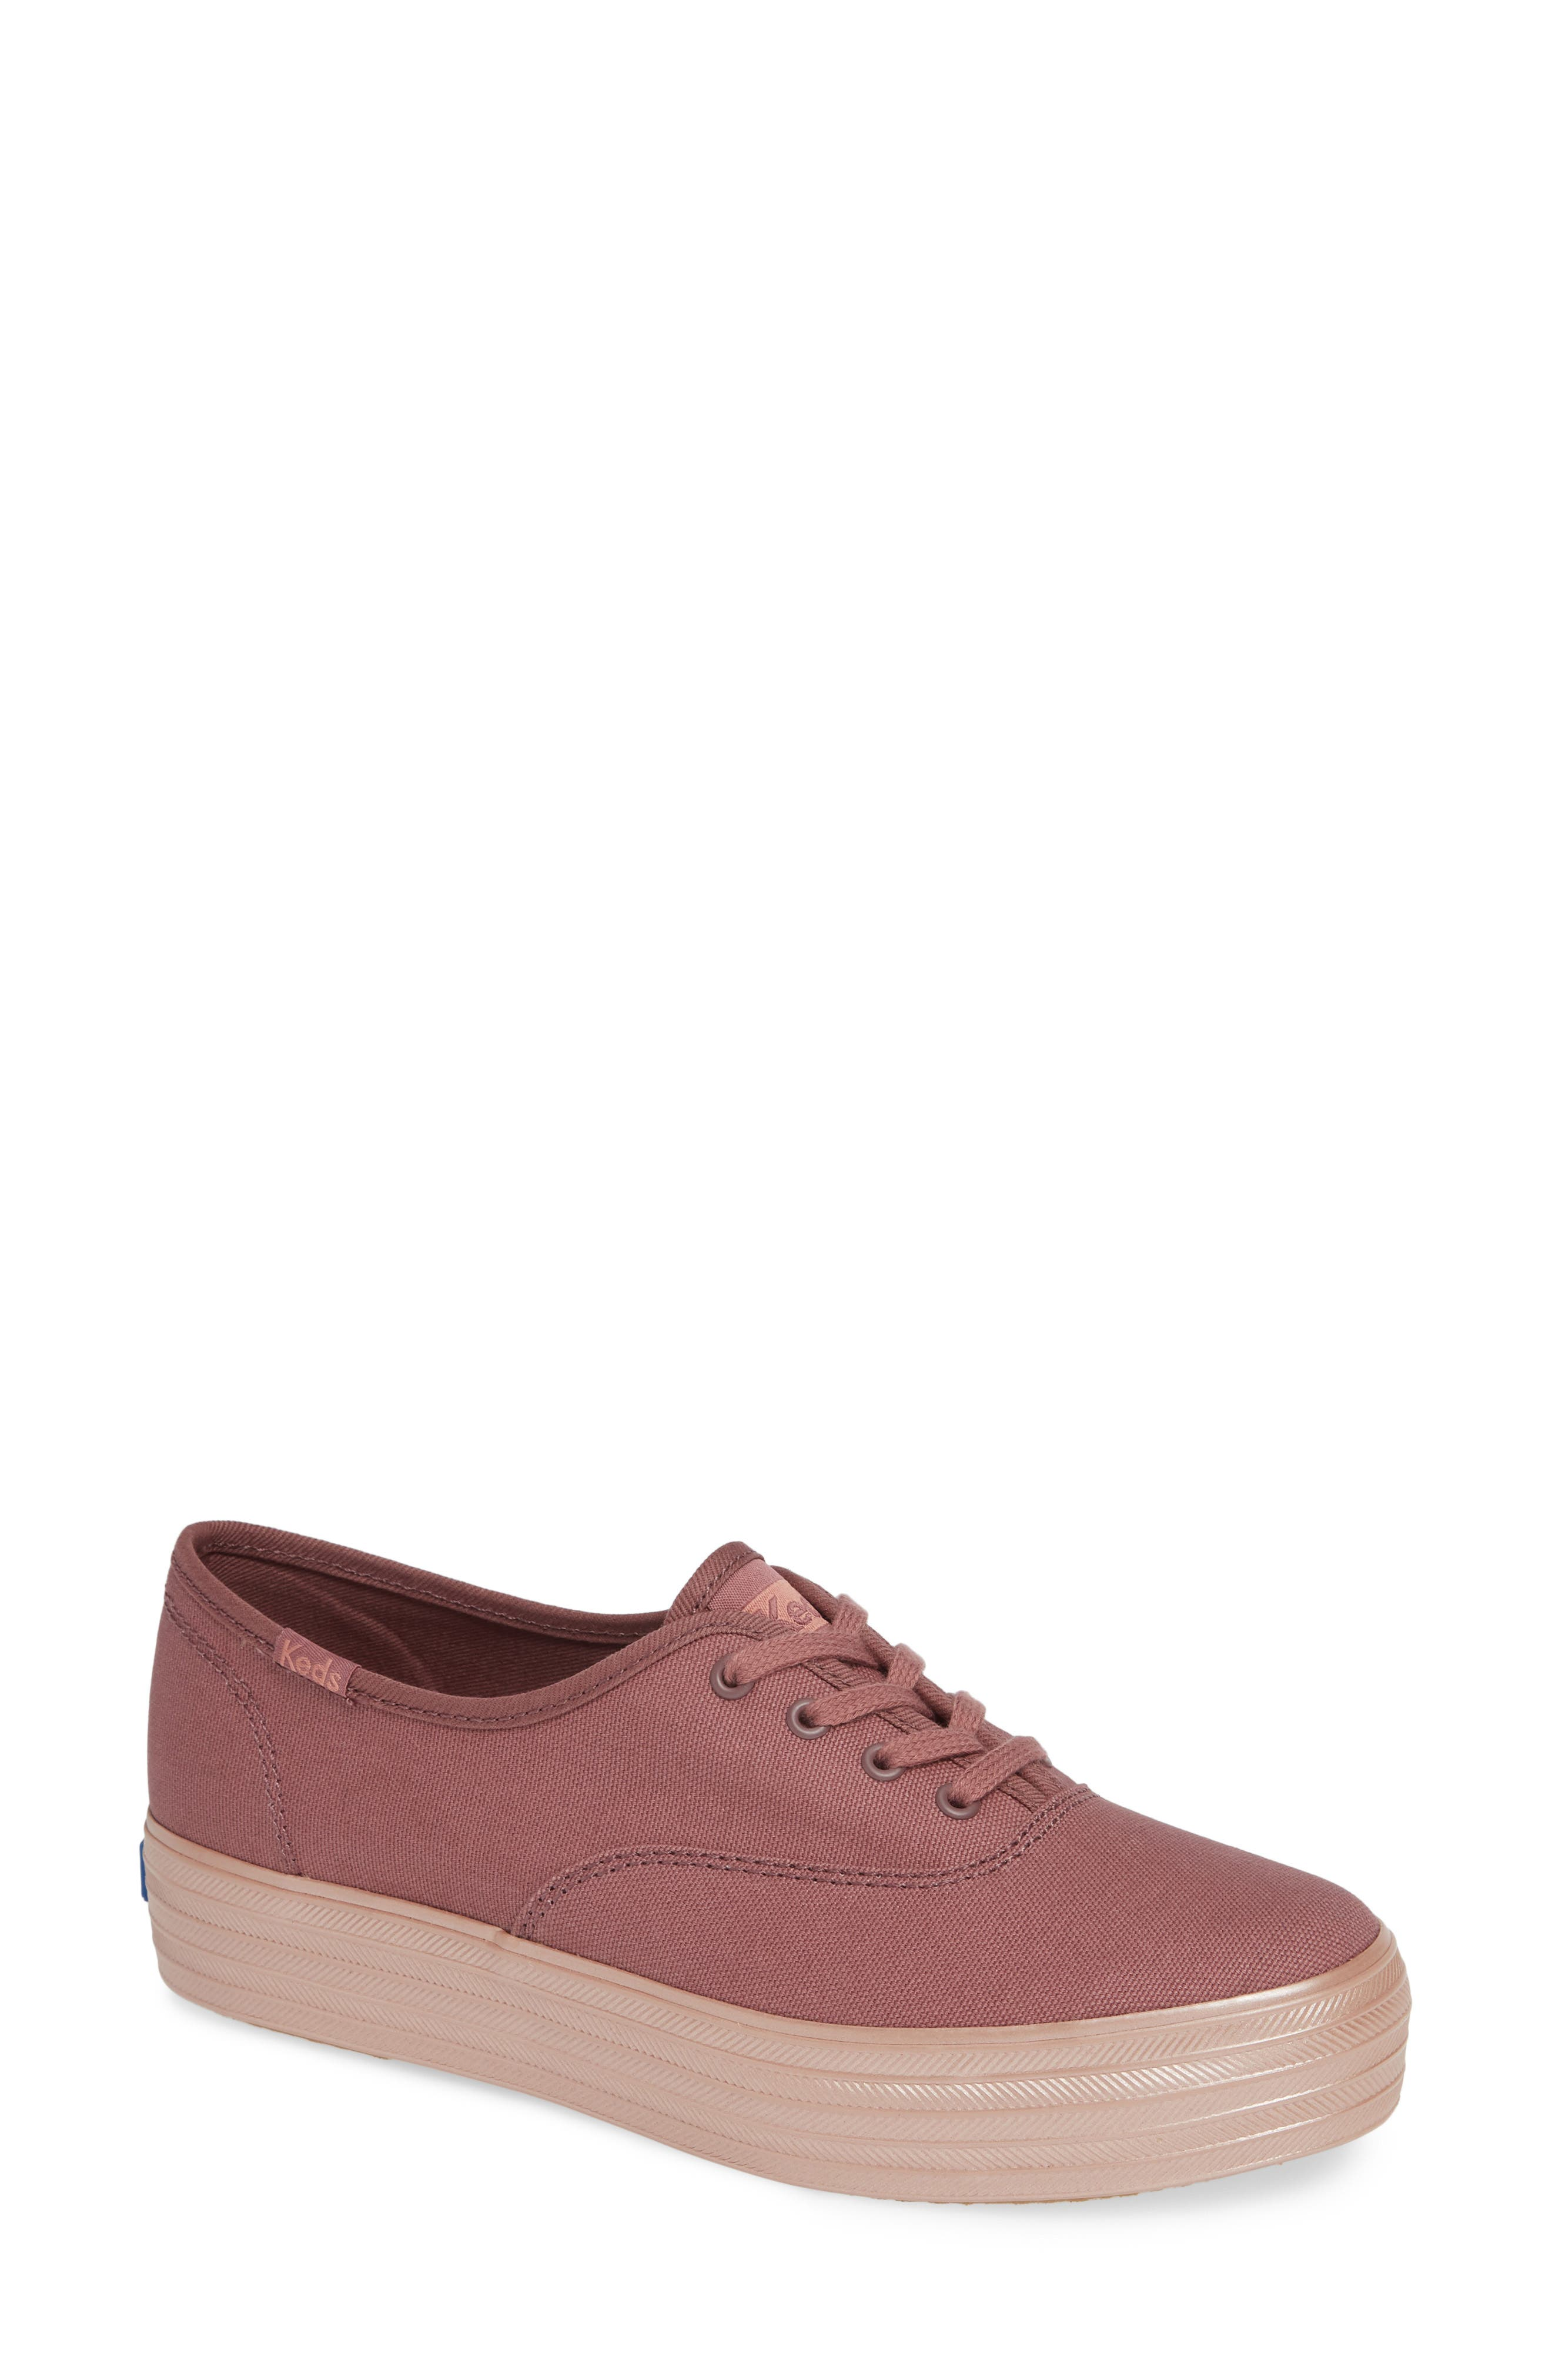 KEDS<SUP>®</SUP> Triple Shimmer Sneaker, Main, color, MAUVE